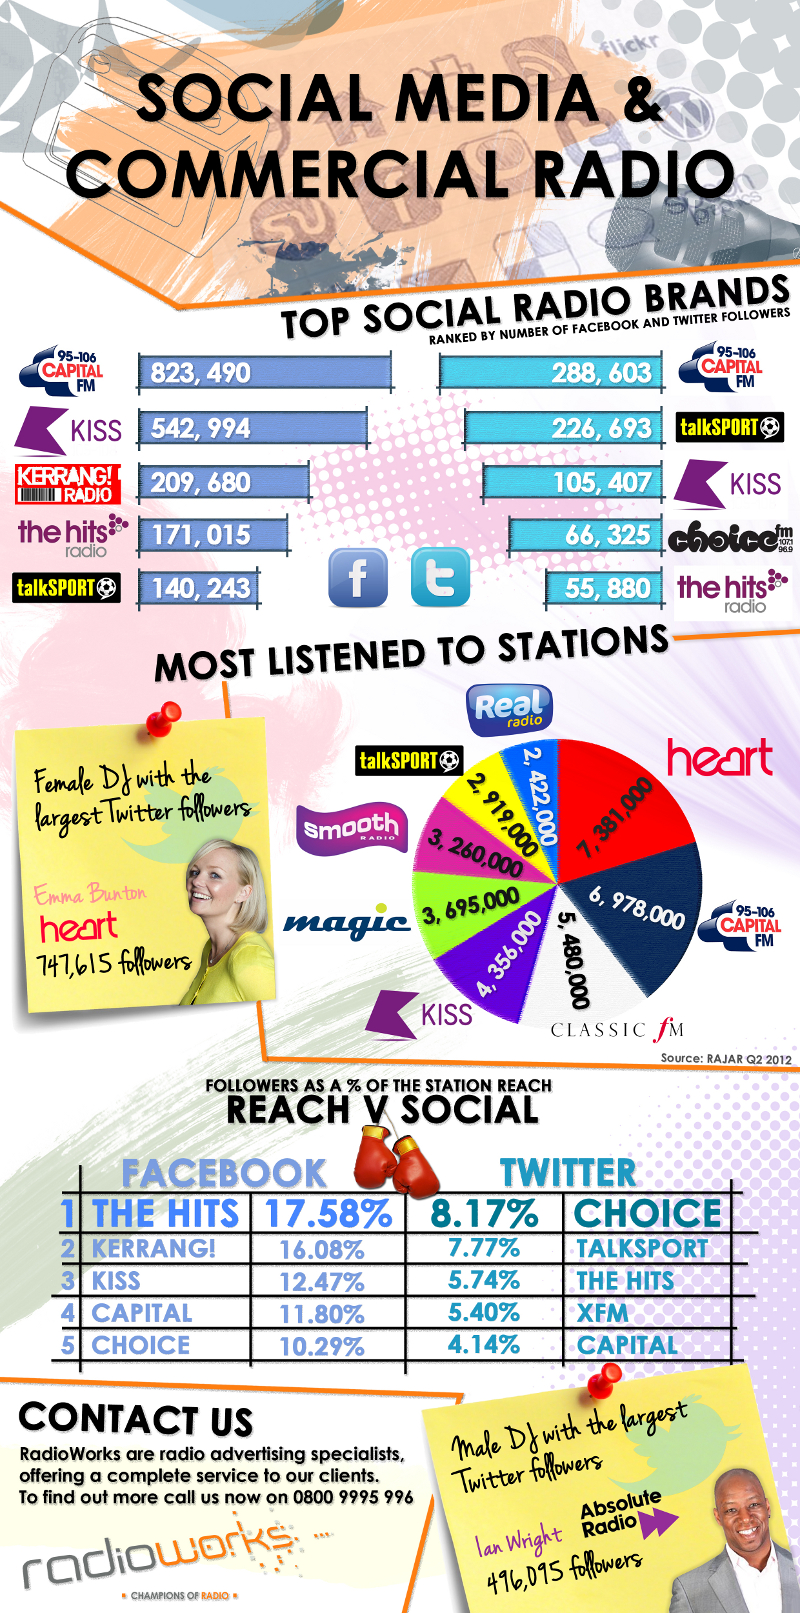 51 Catchy Radio Station Slogans and Great Taglines - BrandonGaille com